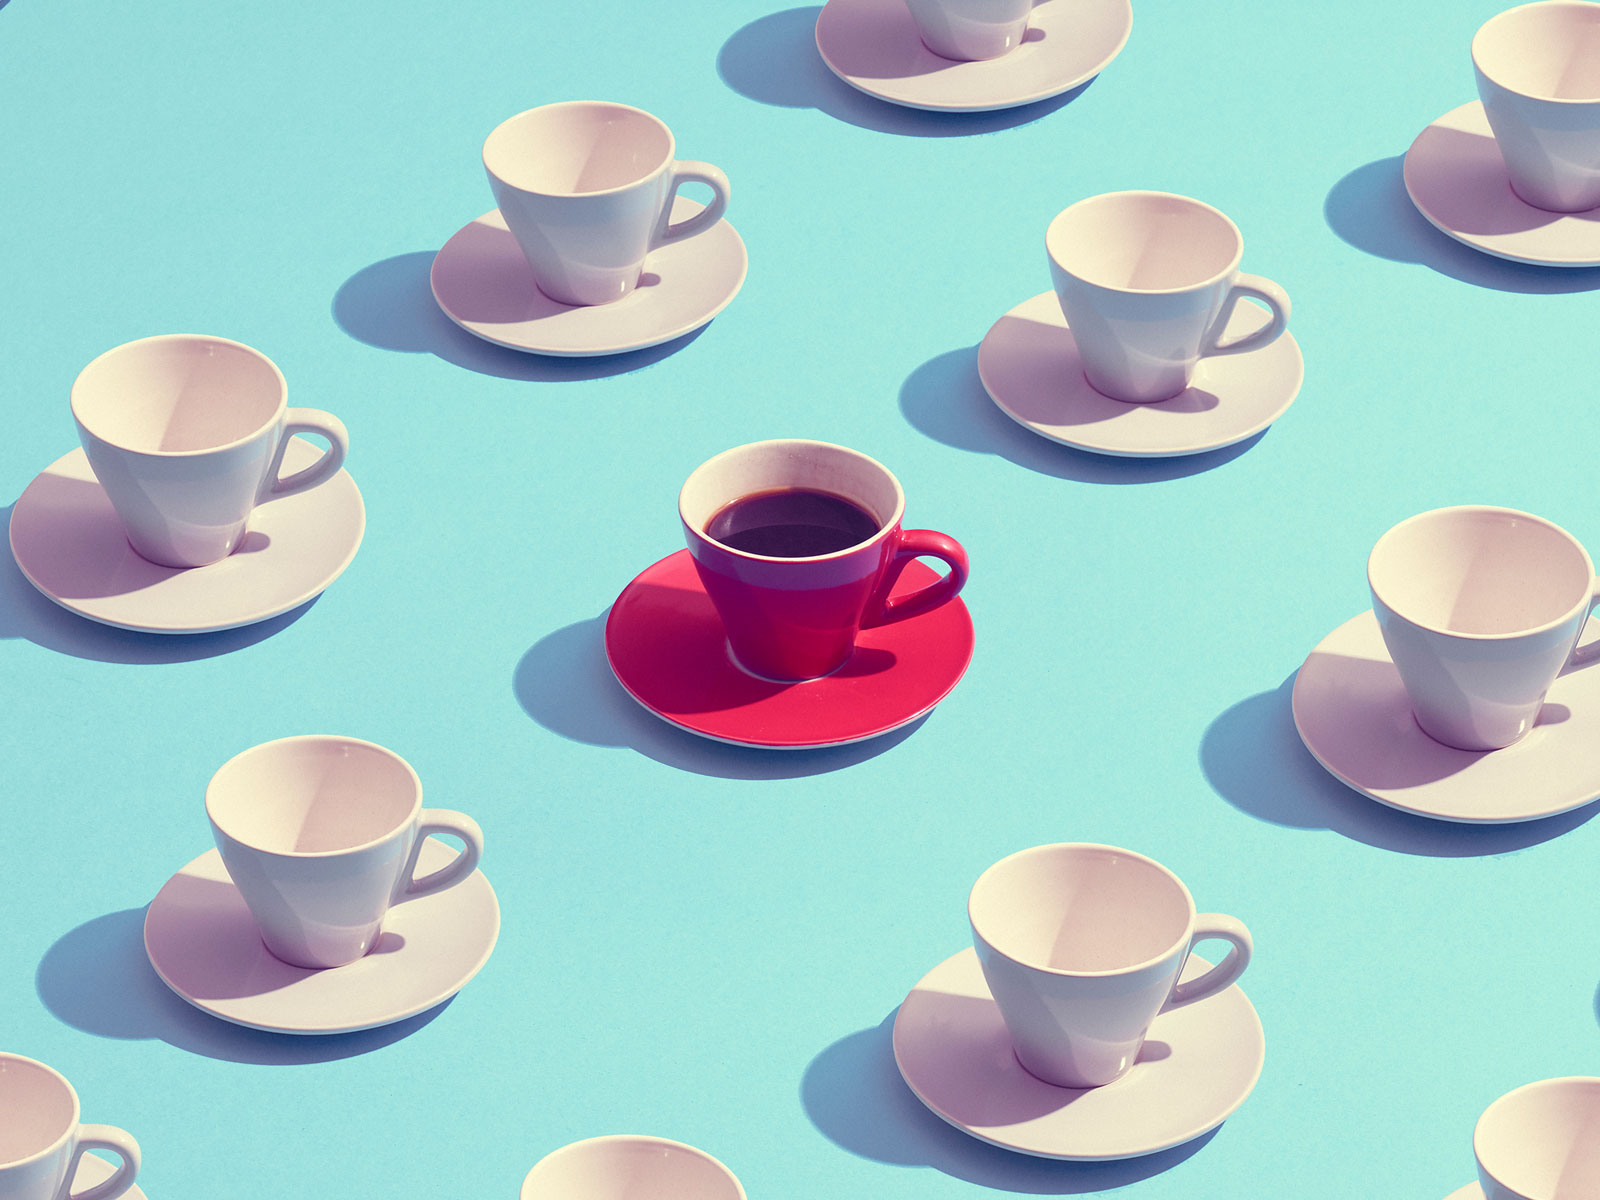 Simply Seeing Coffee May Be Enough to Energize You — But If Not, Shoot for Fewer Than 6 Cups a Day